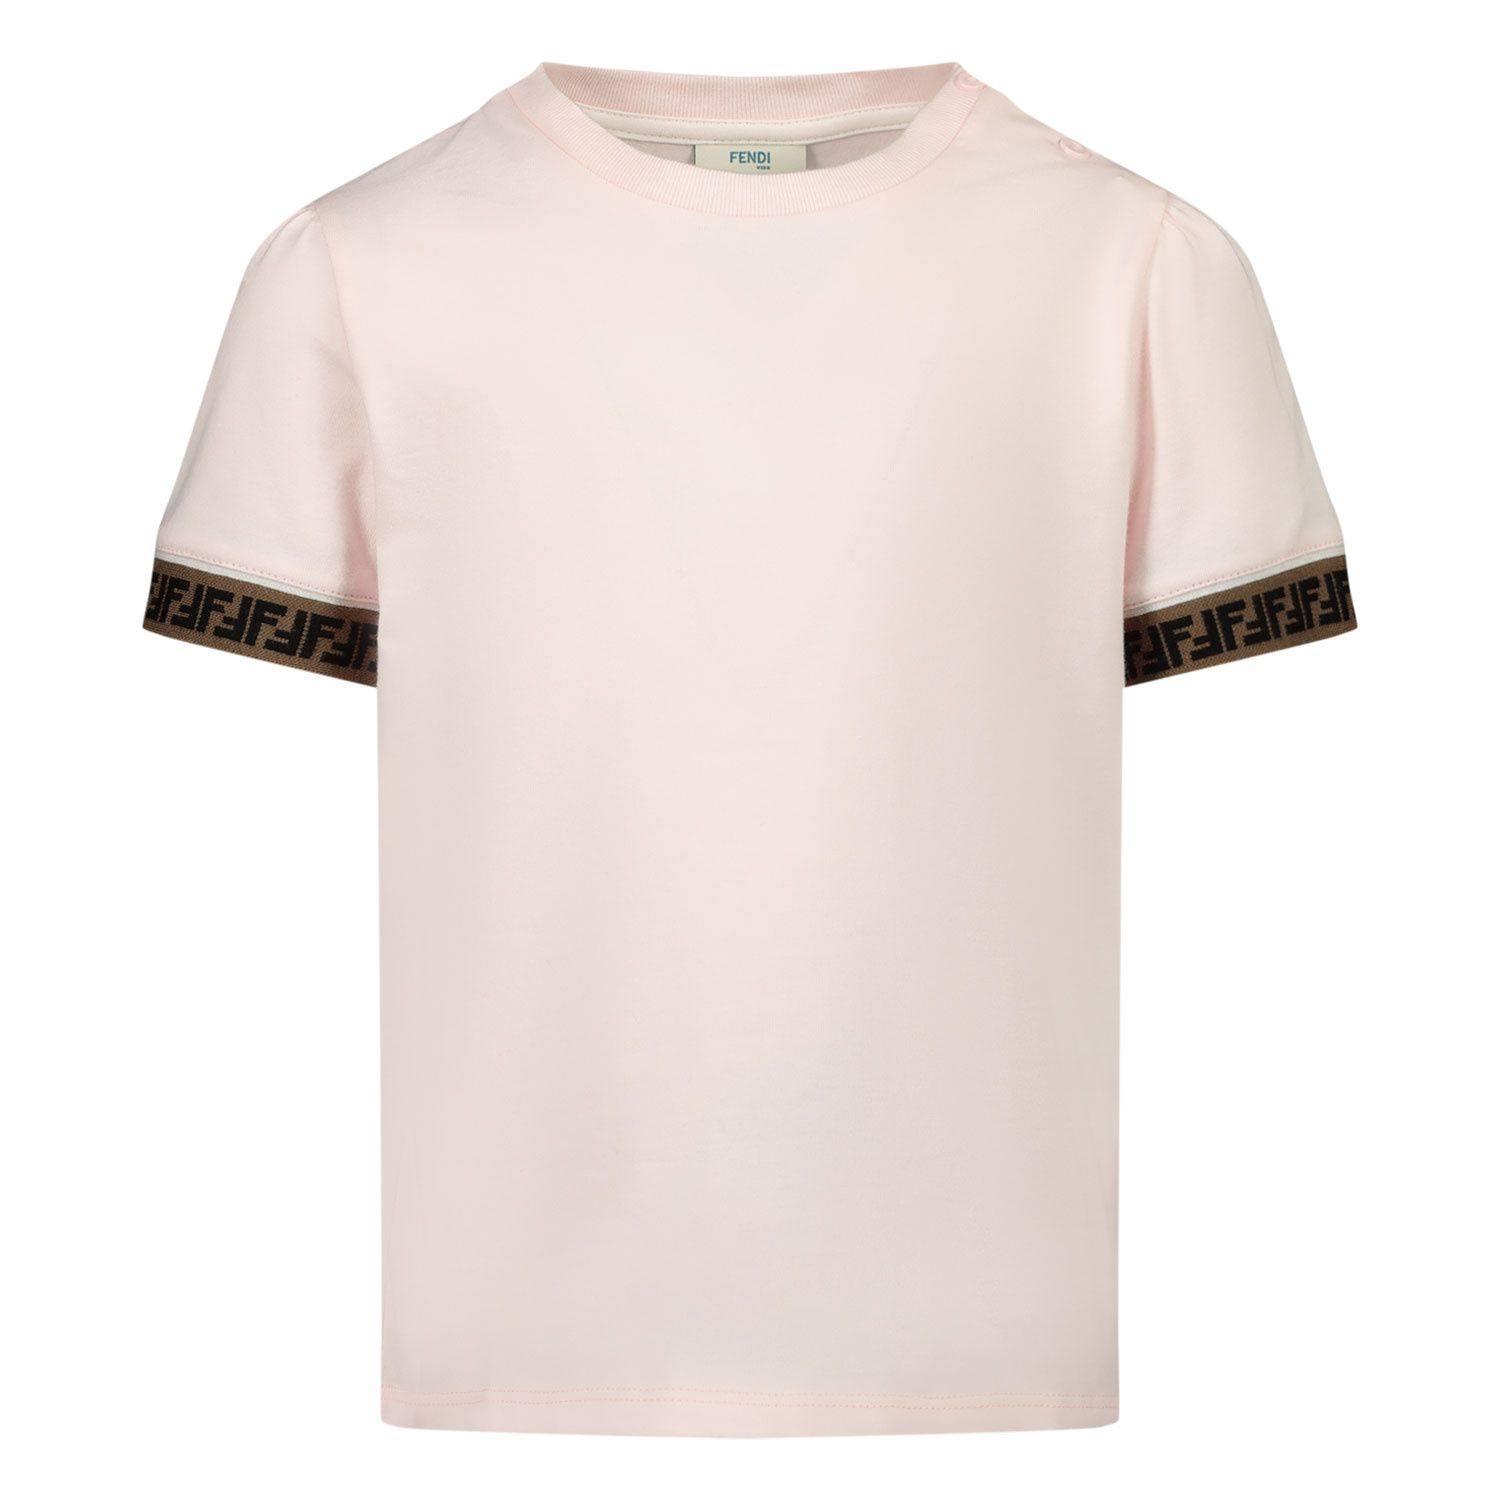 Picture of Fendi BFI117 ST8 baby shirt light pink